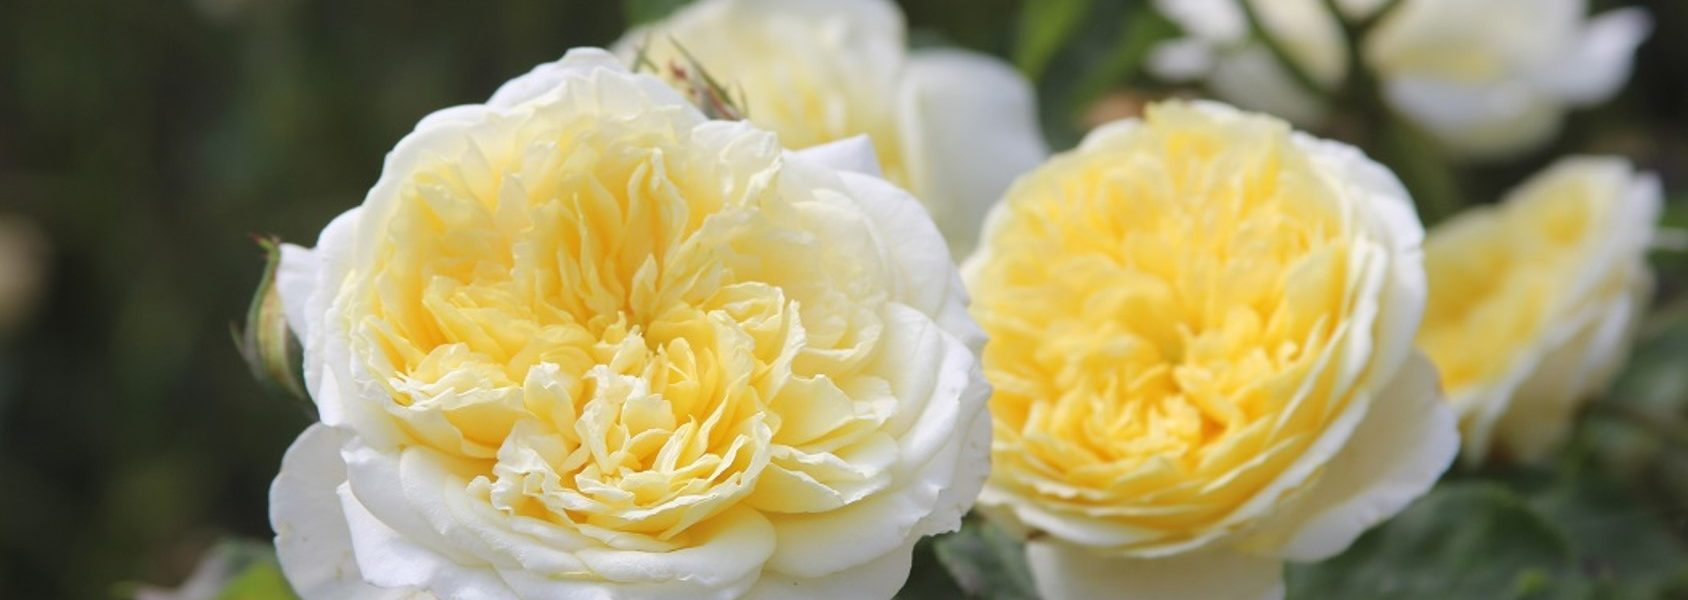 The Pilgrim rose review the right roses score best top garden store david austin english roses rose products rose rating the right leap rose food fertilizer